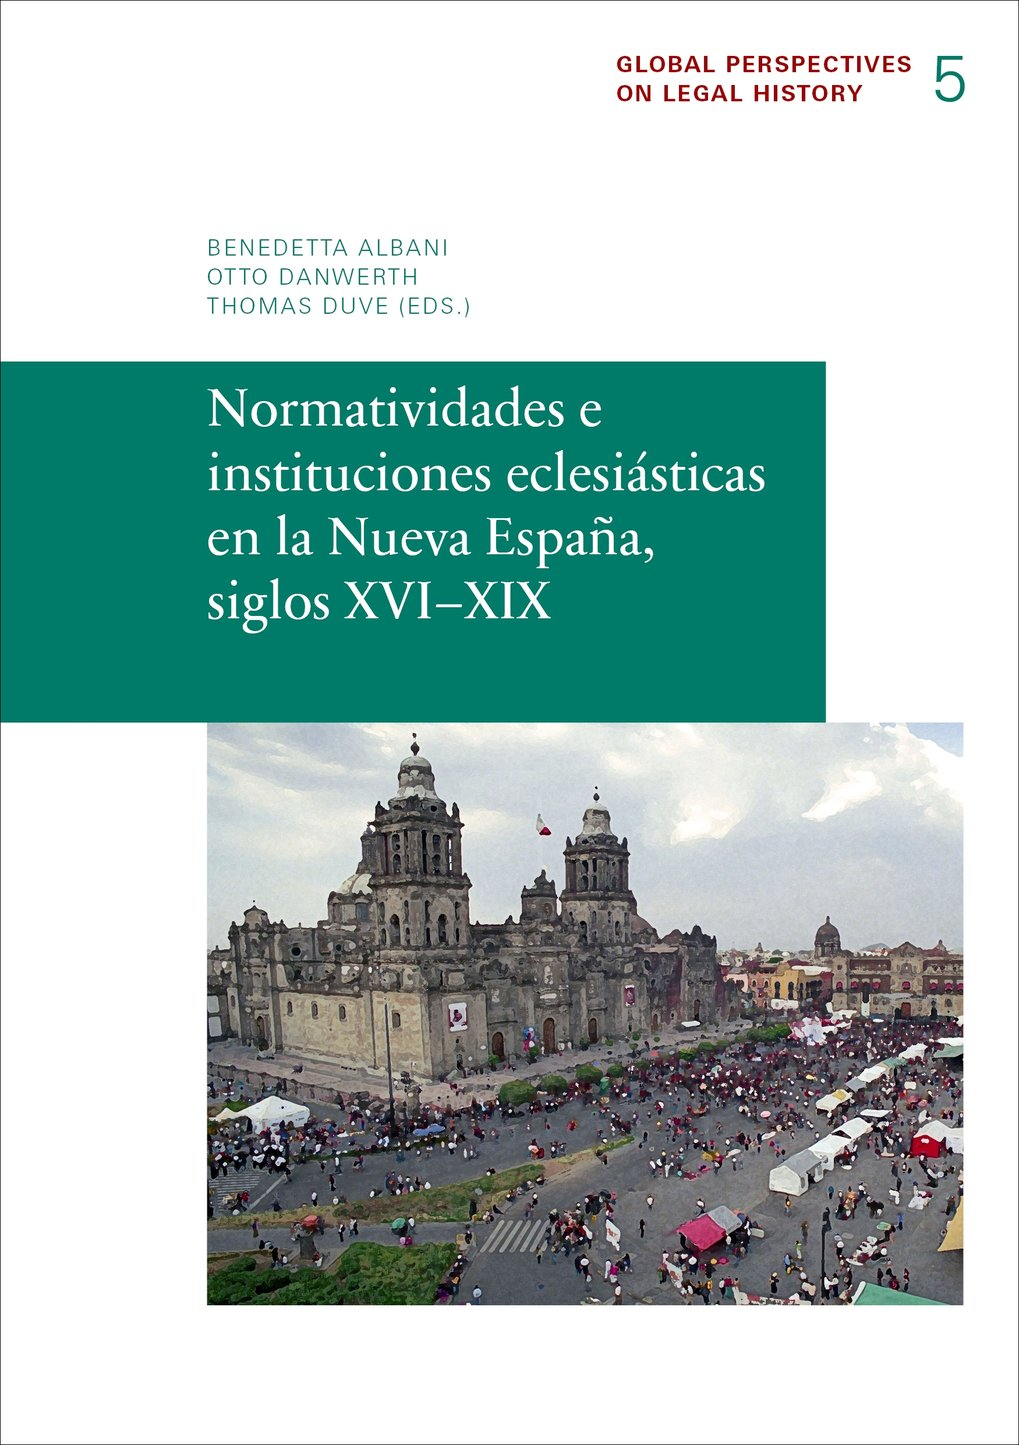 Cover illustration: Otto Danwerth, Frankfurt am Main (Catedral Metropolitana, Ciudad de México, 2011)<br />Cover design by Elmar Lixenfeld, Frankfurt am Main